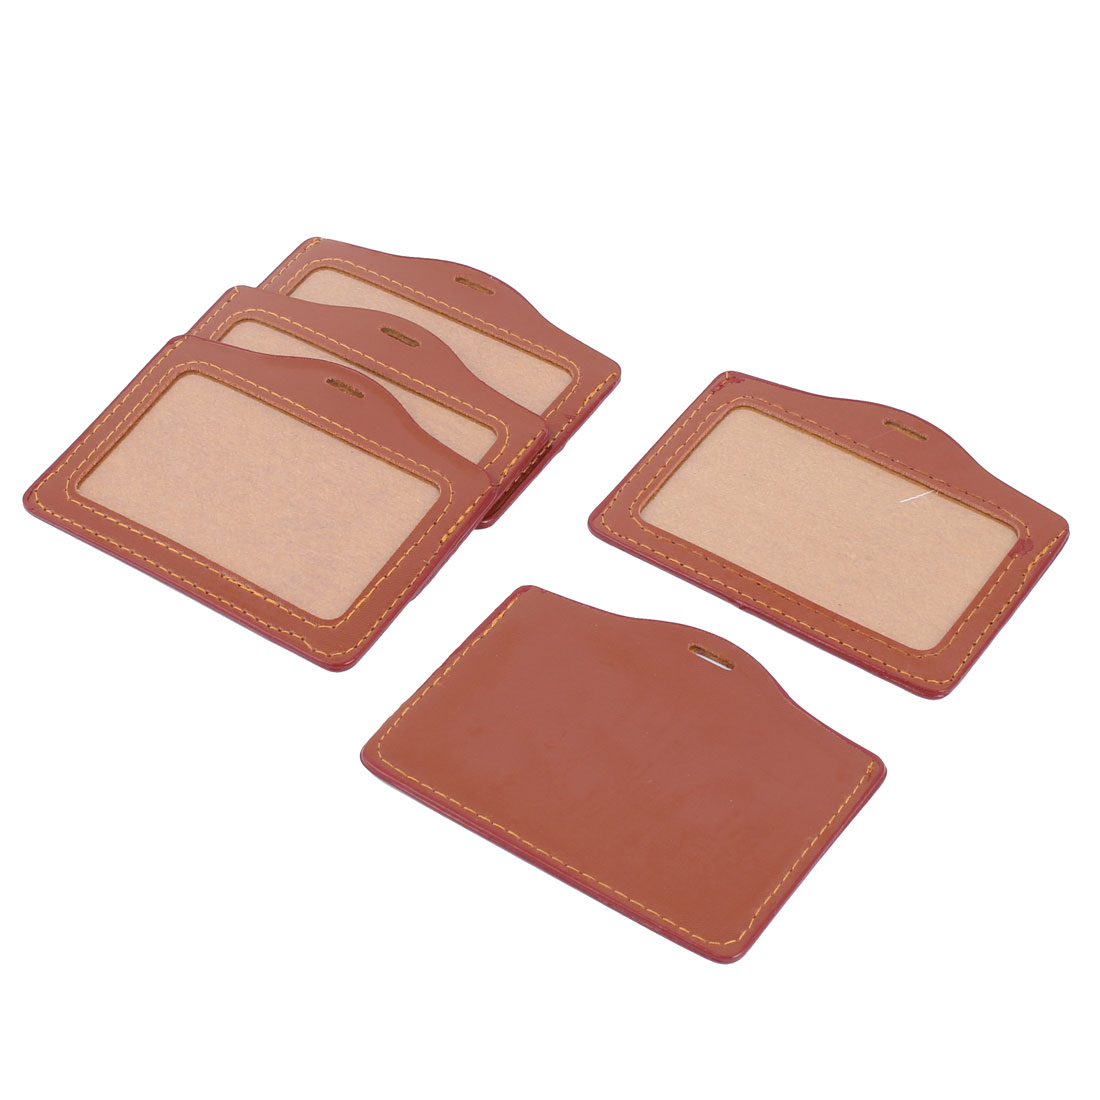 Faux Leather Work Business Student ID Name Card Badge Holder Pocket Brown 5 Pcs